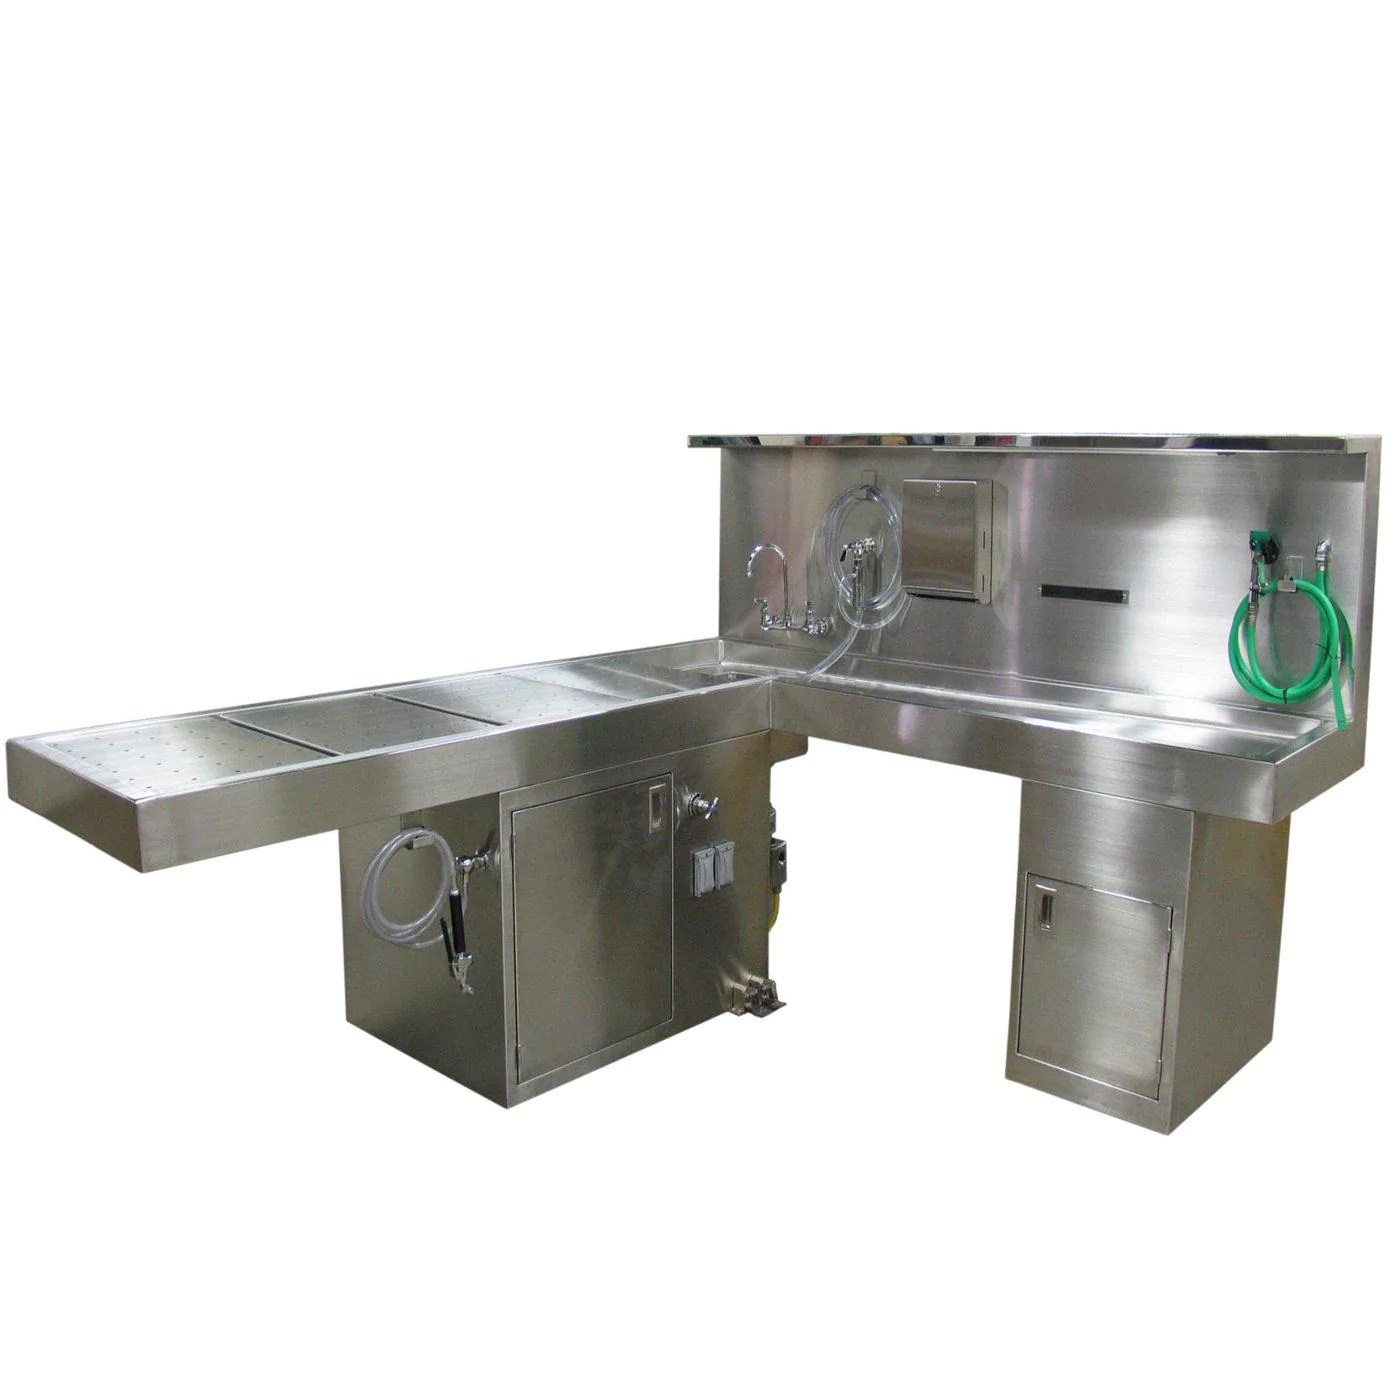 Propelled Hydraulic Necropsy Table Mortech - Year of Clean Water